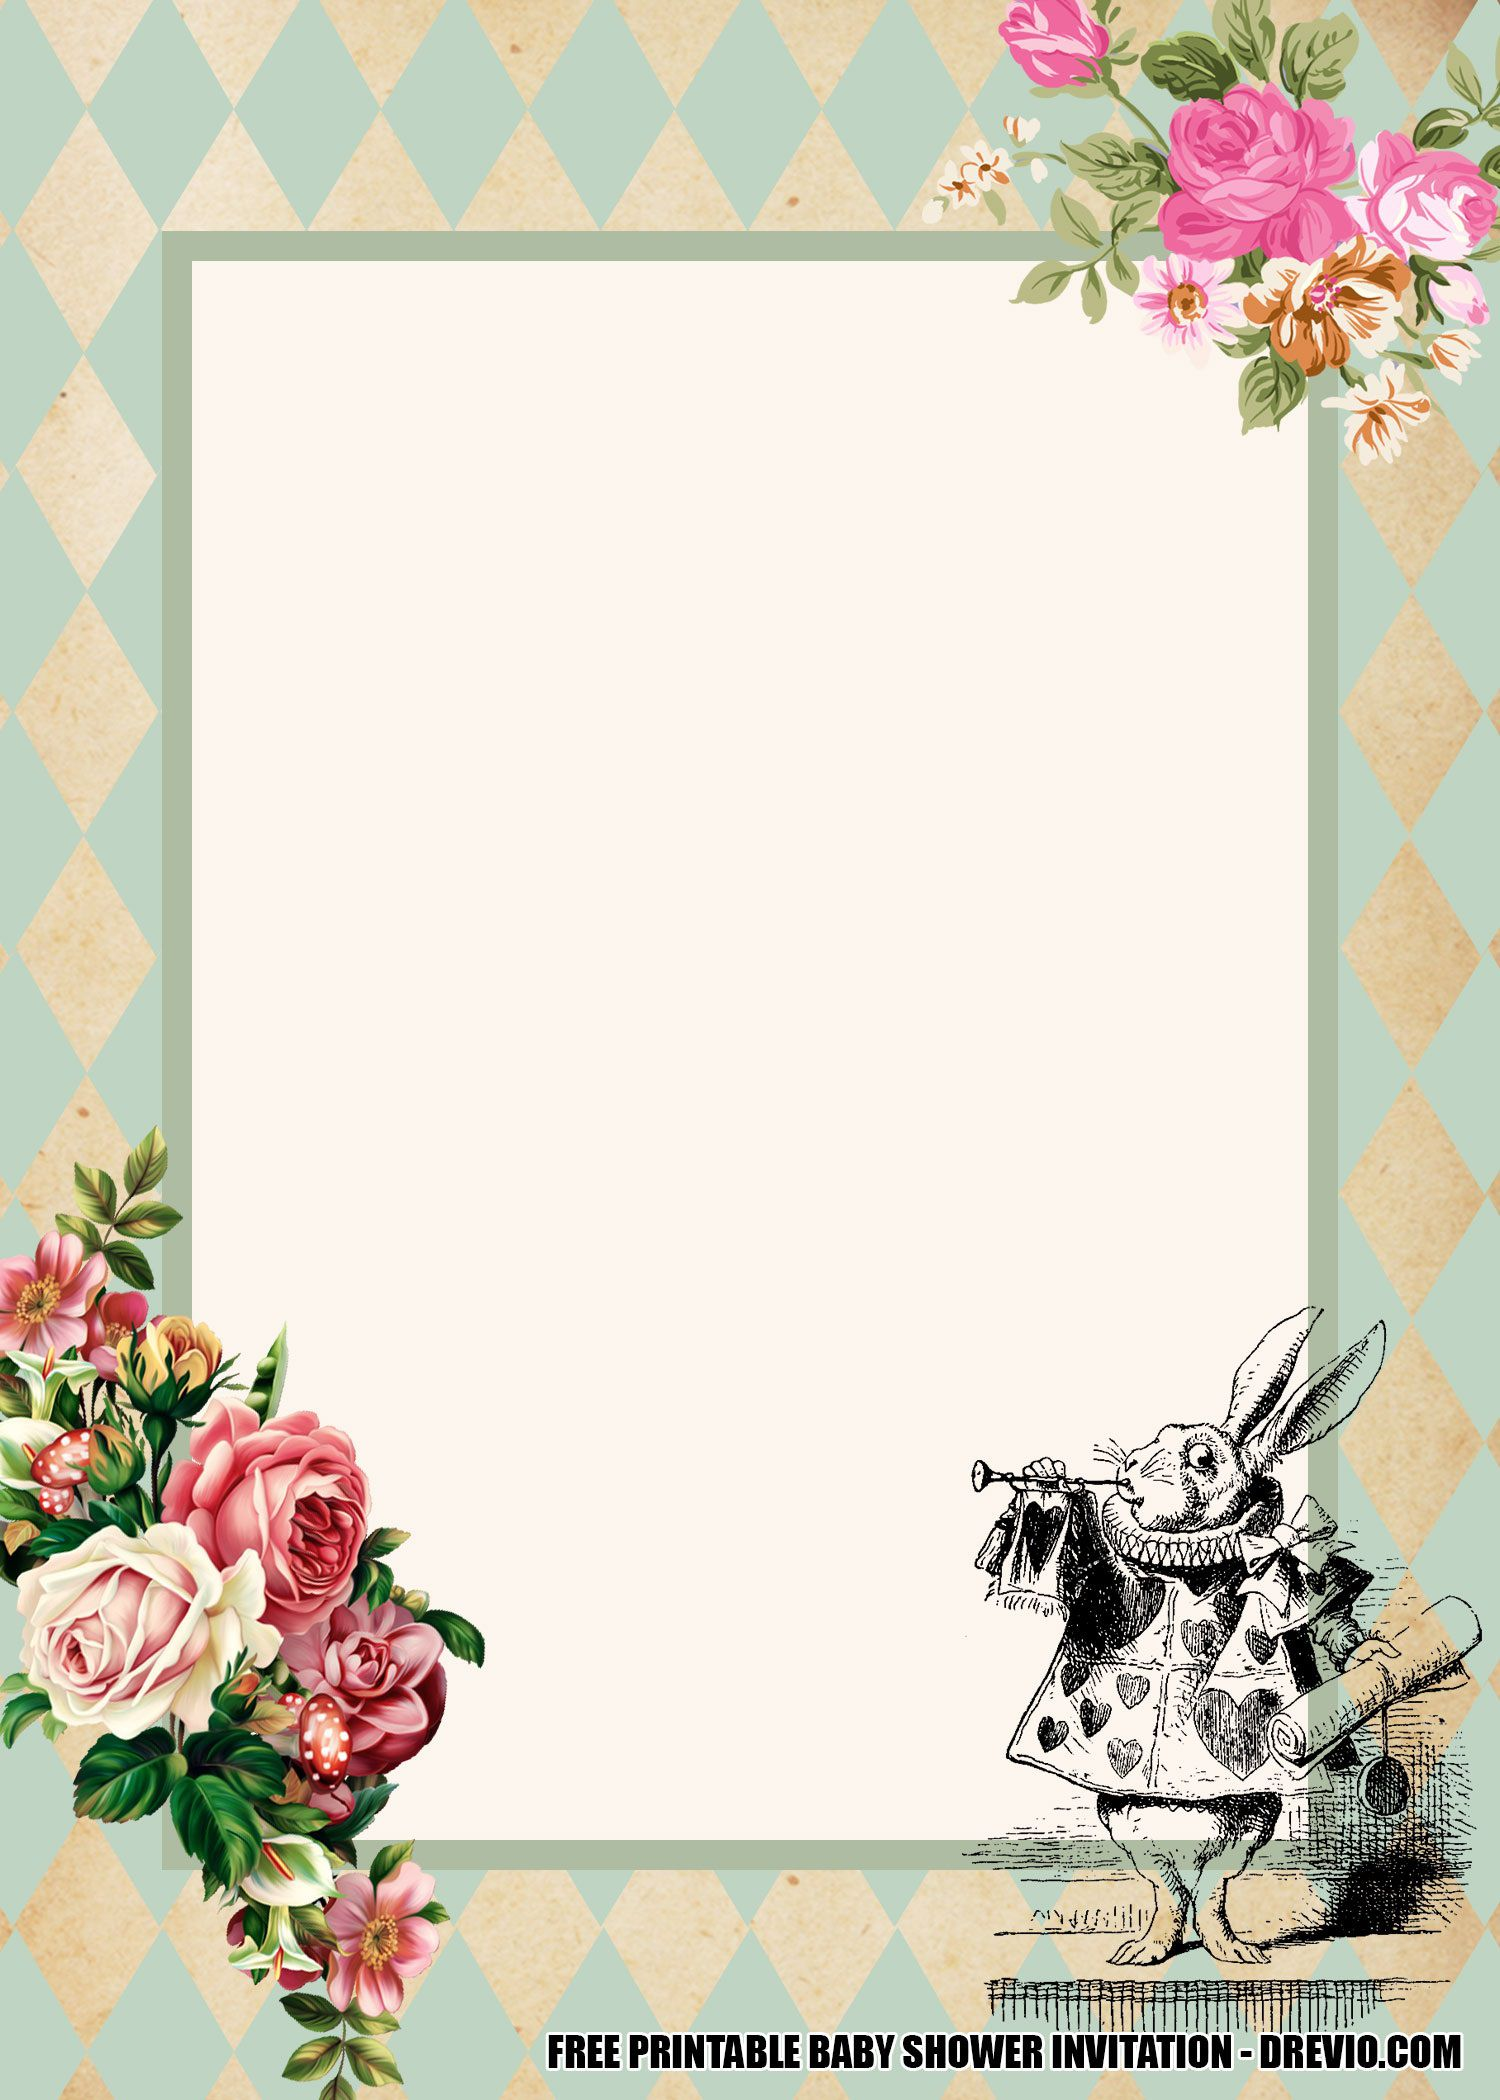 006 Wonderful Alice In Wonderland Invitation Template Example  Templates Birthday Free Wedding Wording DownloadFull